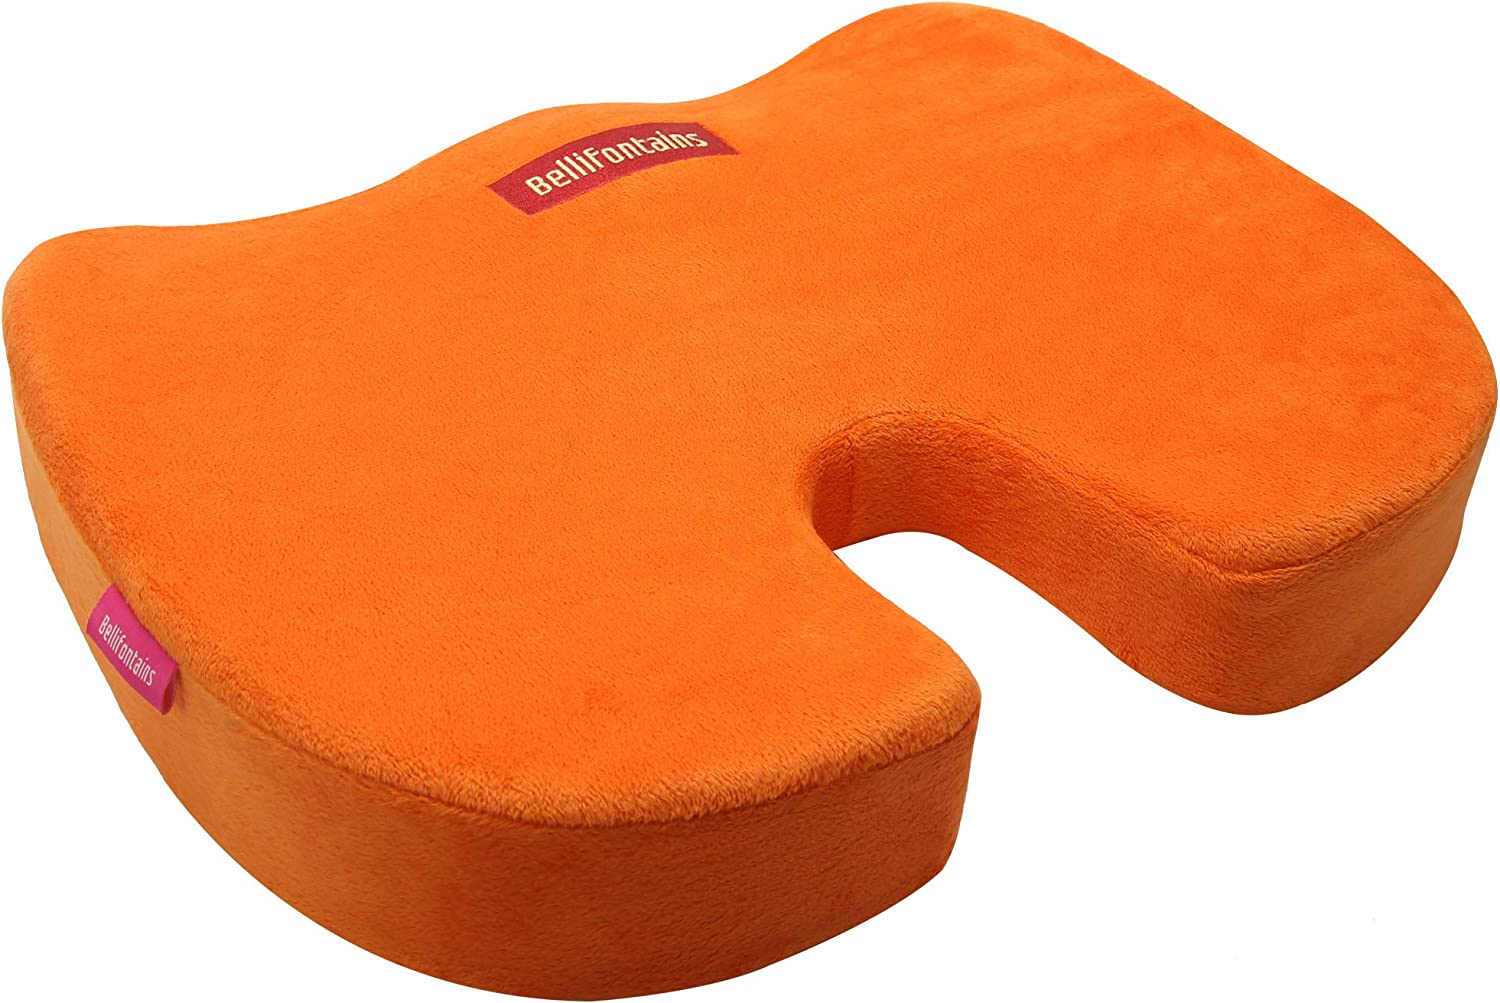 Bellifontains Coccyx Orthopedic Memory Foam Seat Cushion for Office Chairs and Car-Relieve Sciatica, Back Tailbone Pain 2 Covers, Orange Gray